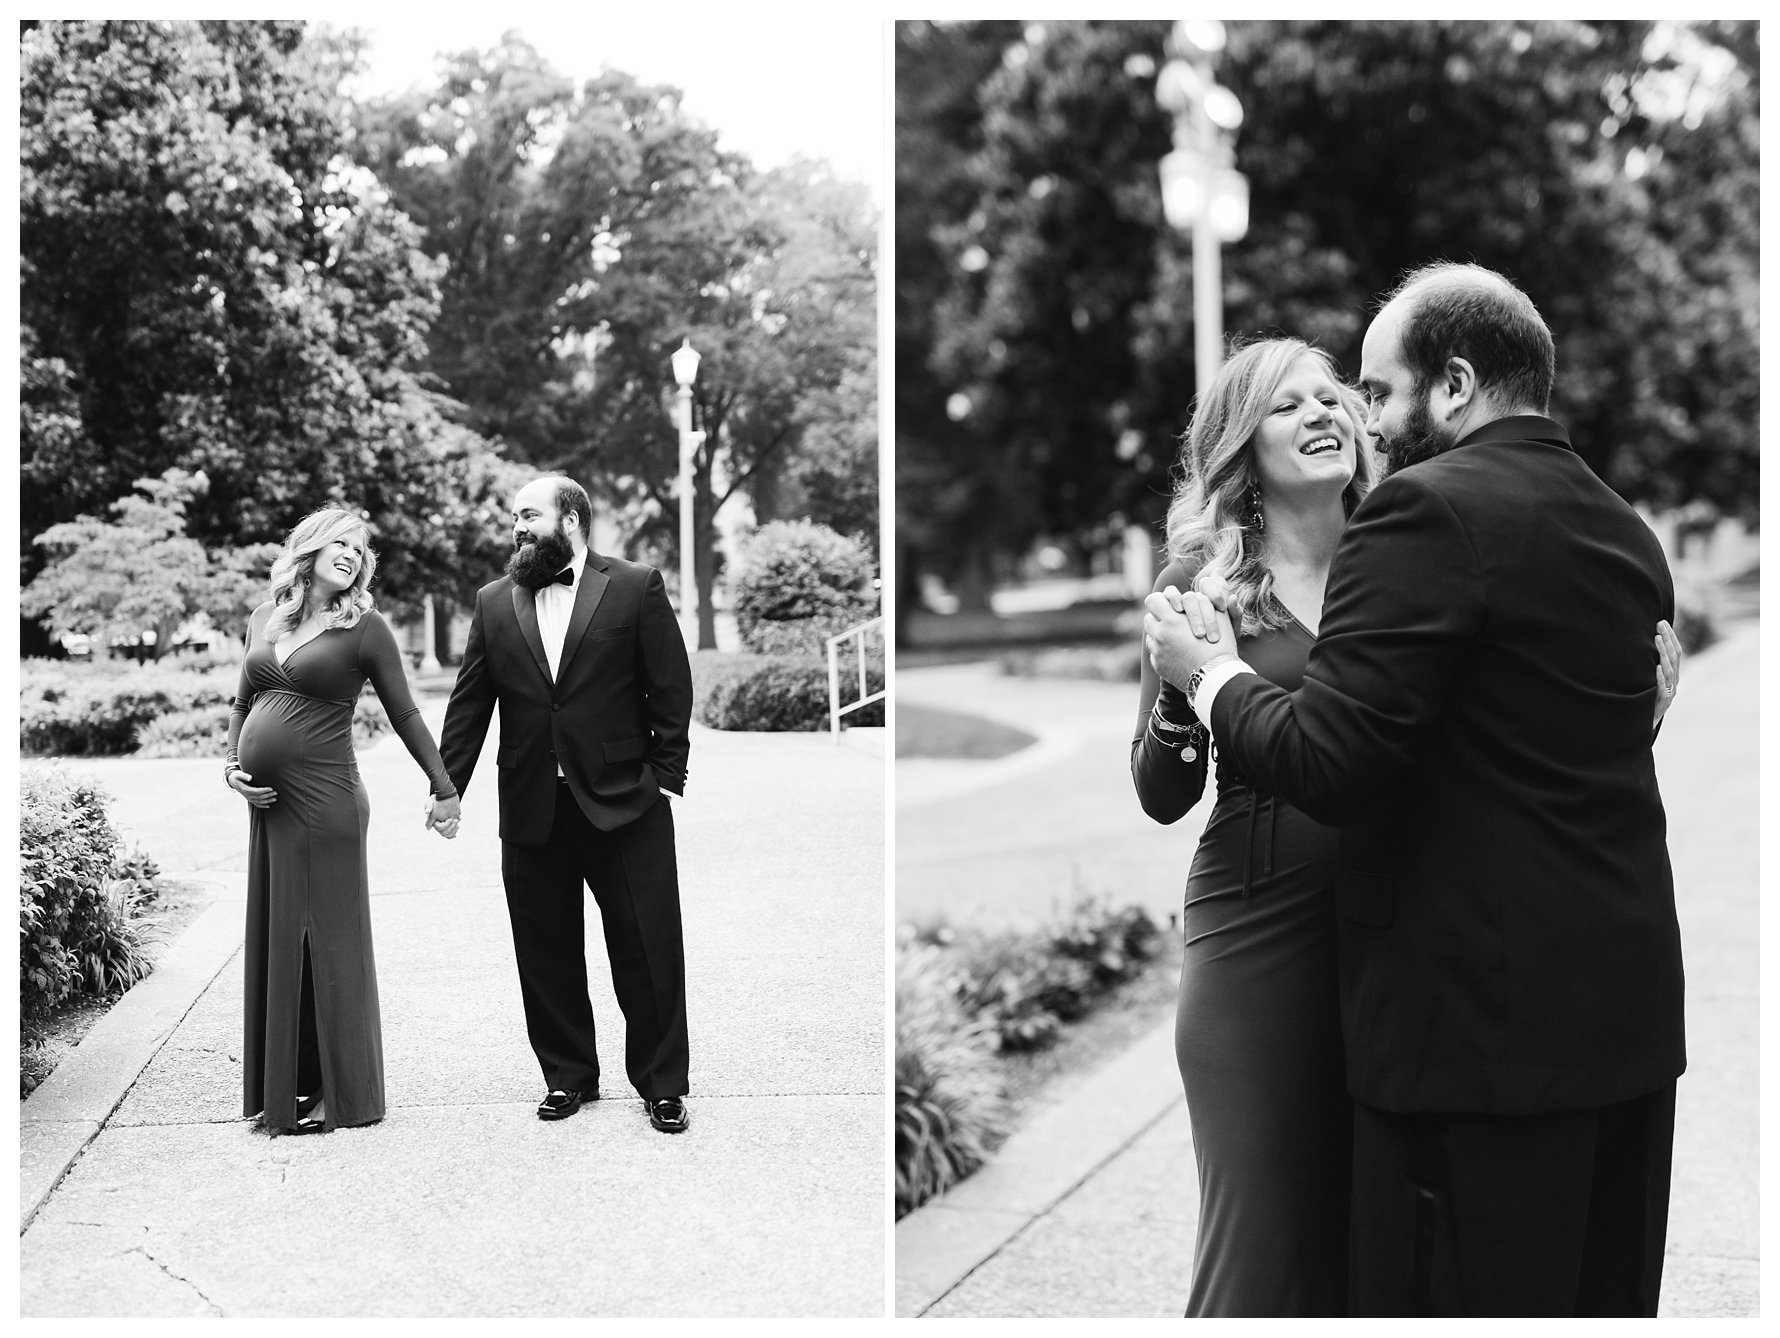 Raleigh_NC_Formal_Maternity_Photography_Blue_Black_Tie_0011